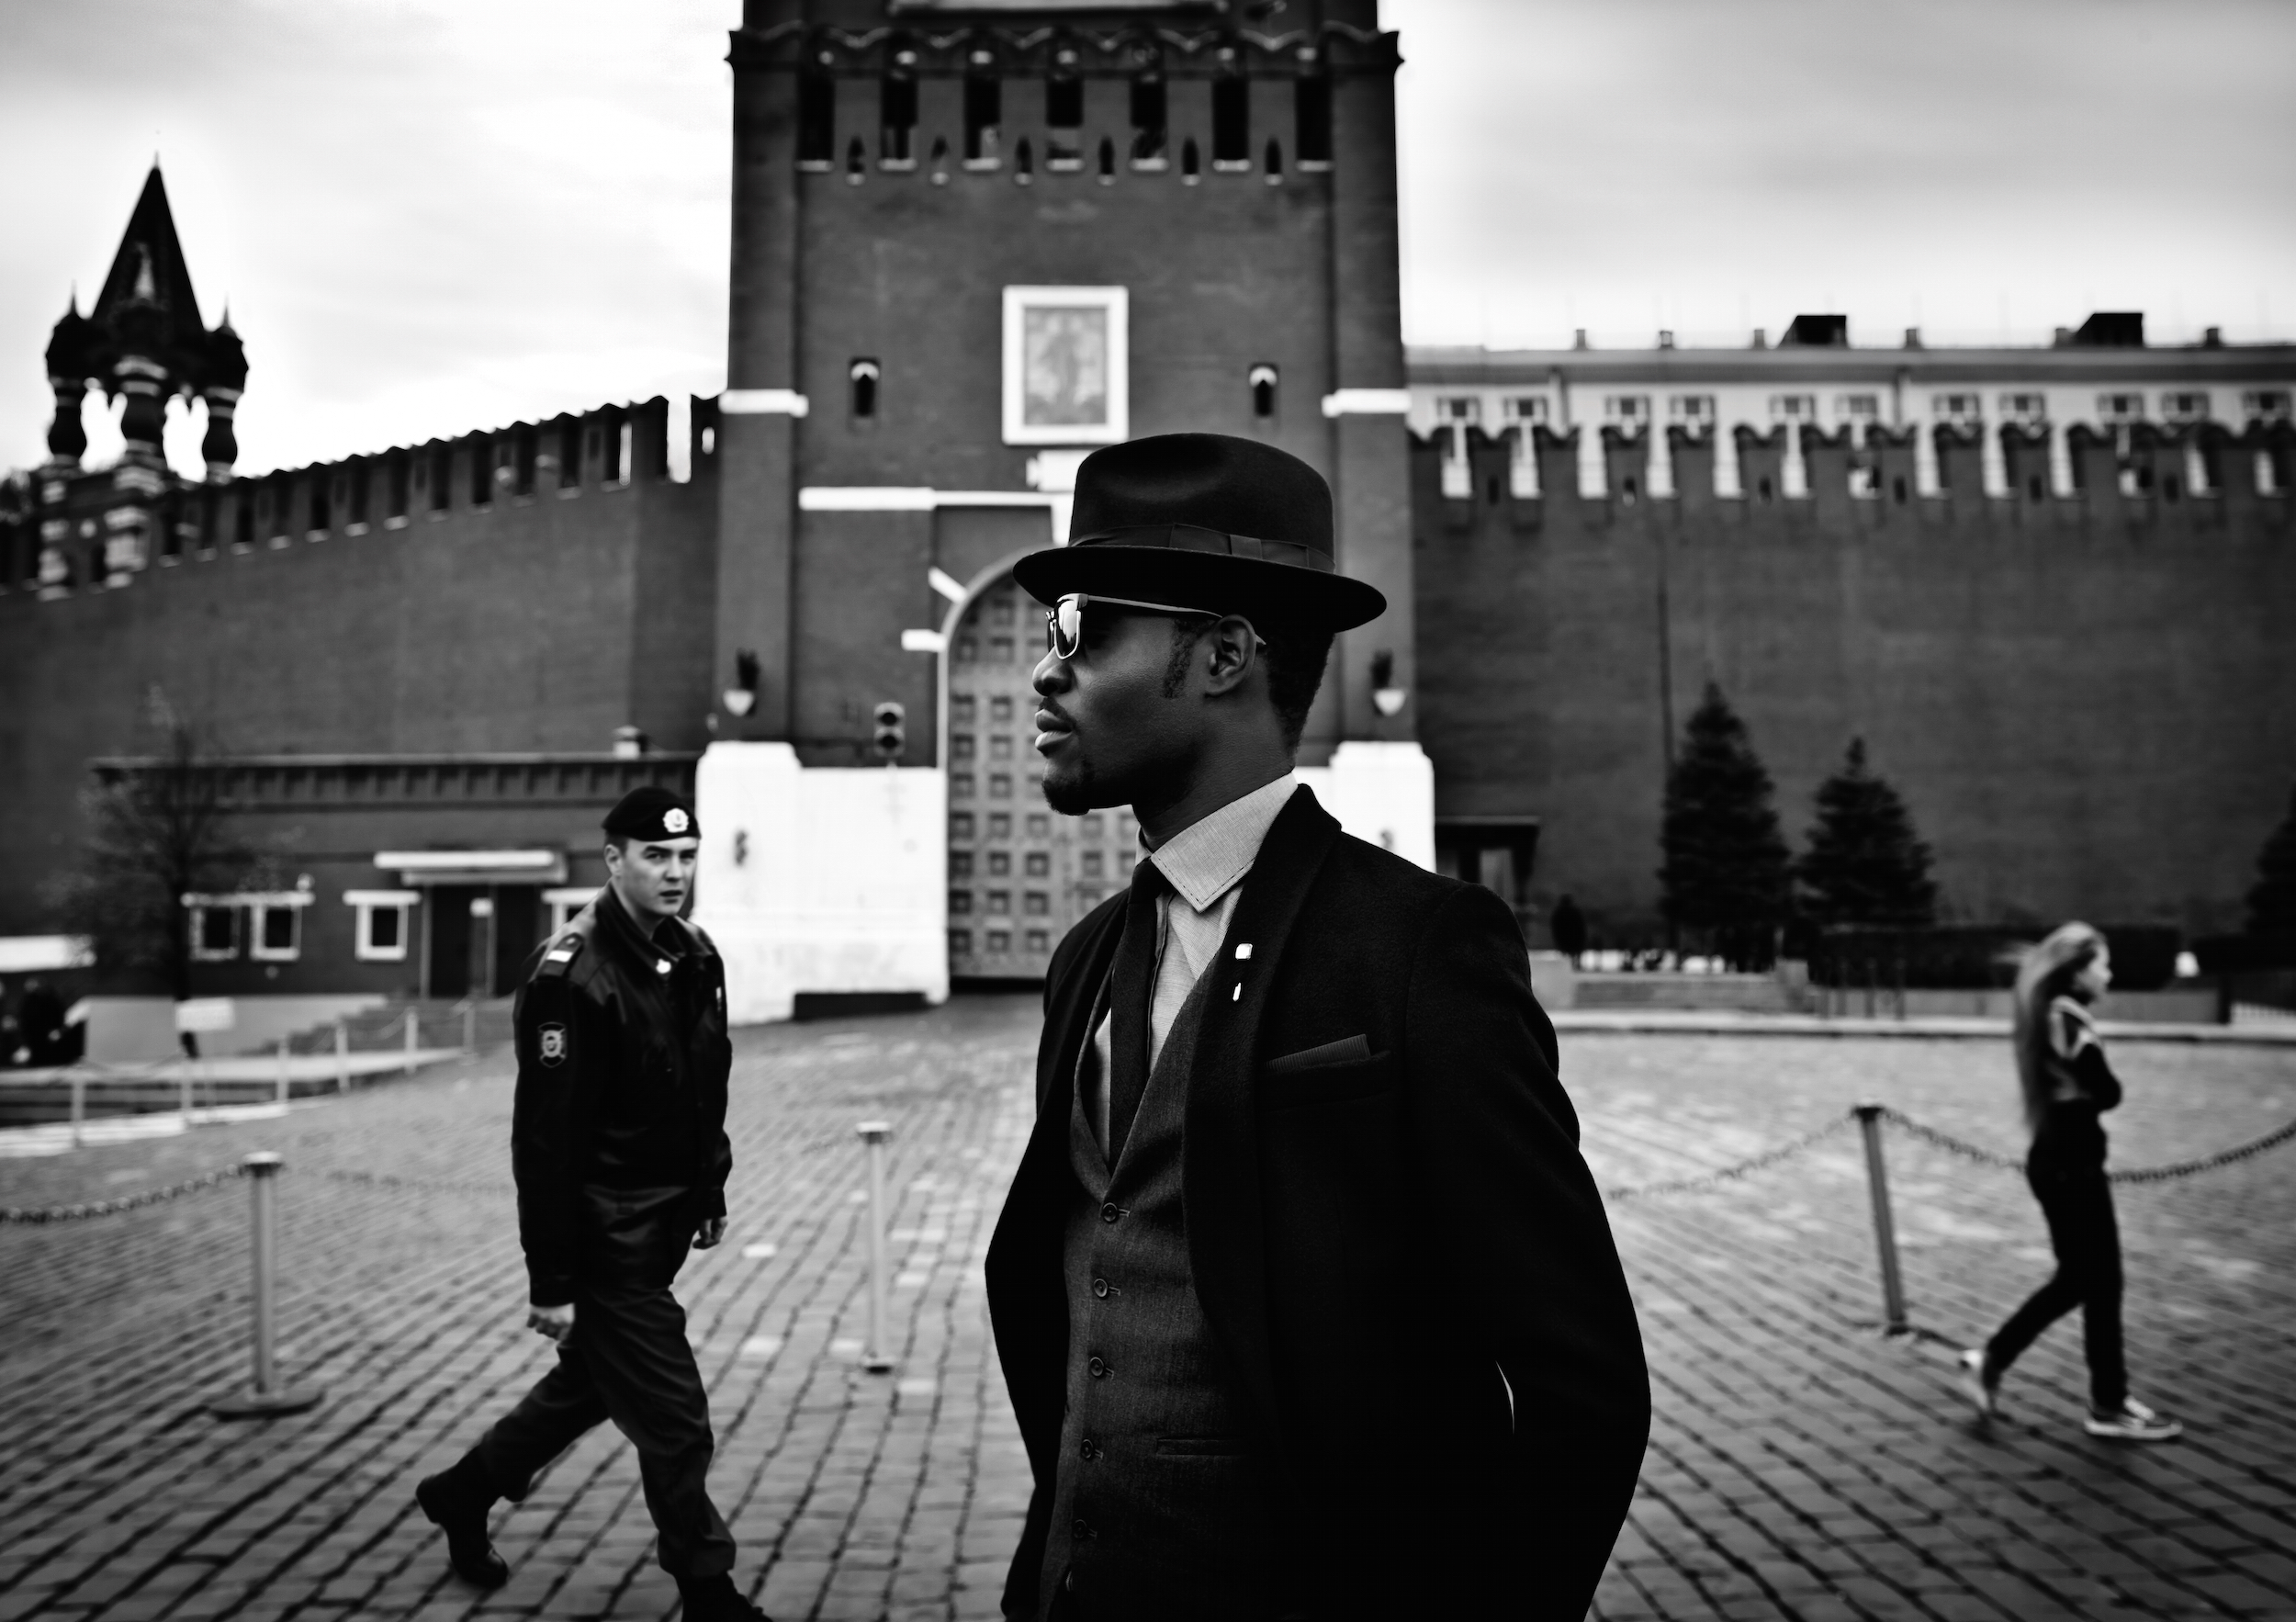 Arteh-Odjidja-Stranger-in-Moscow-Red Square-2012-dandy-lion